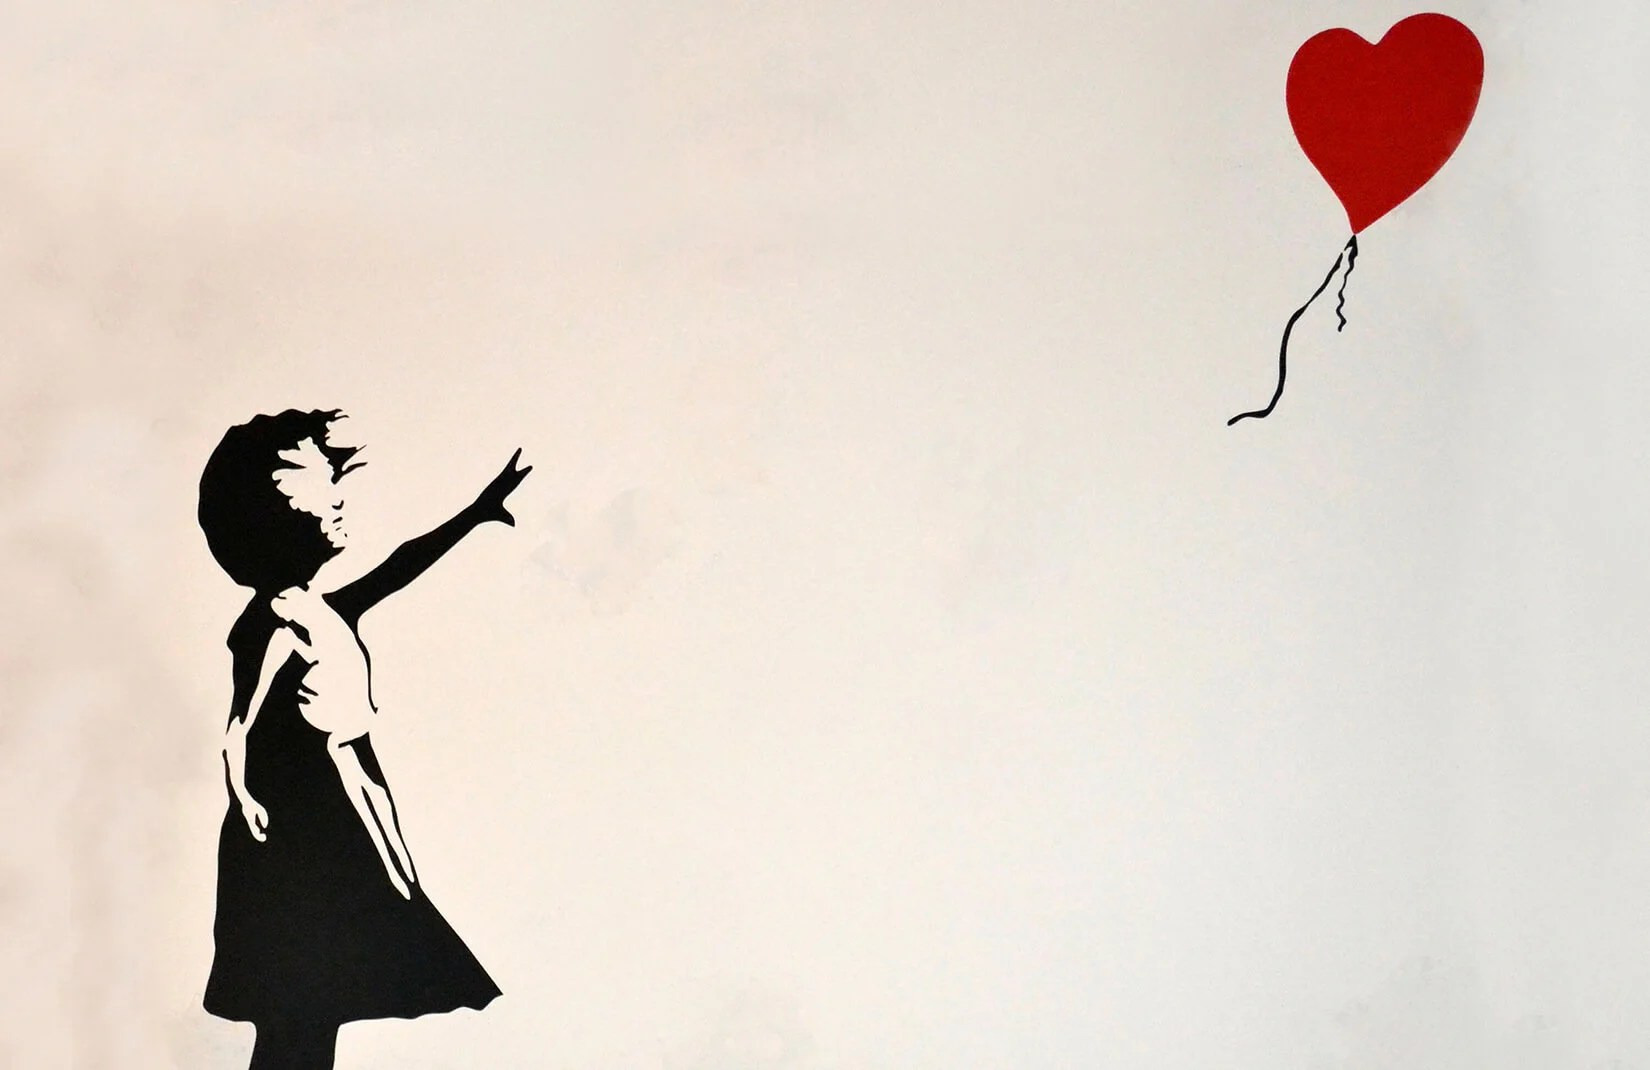 Banksy Balloon Girl Wallpaper Wall Mural MuralsWallpaper